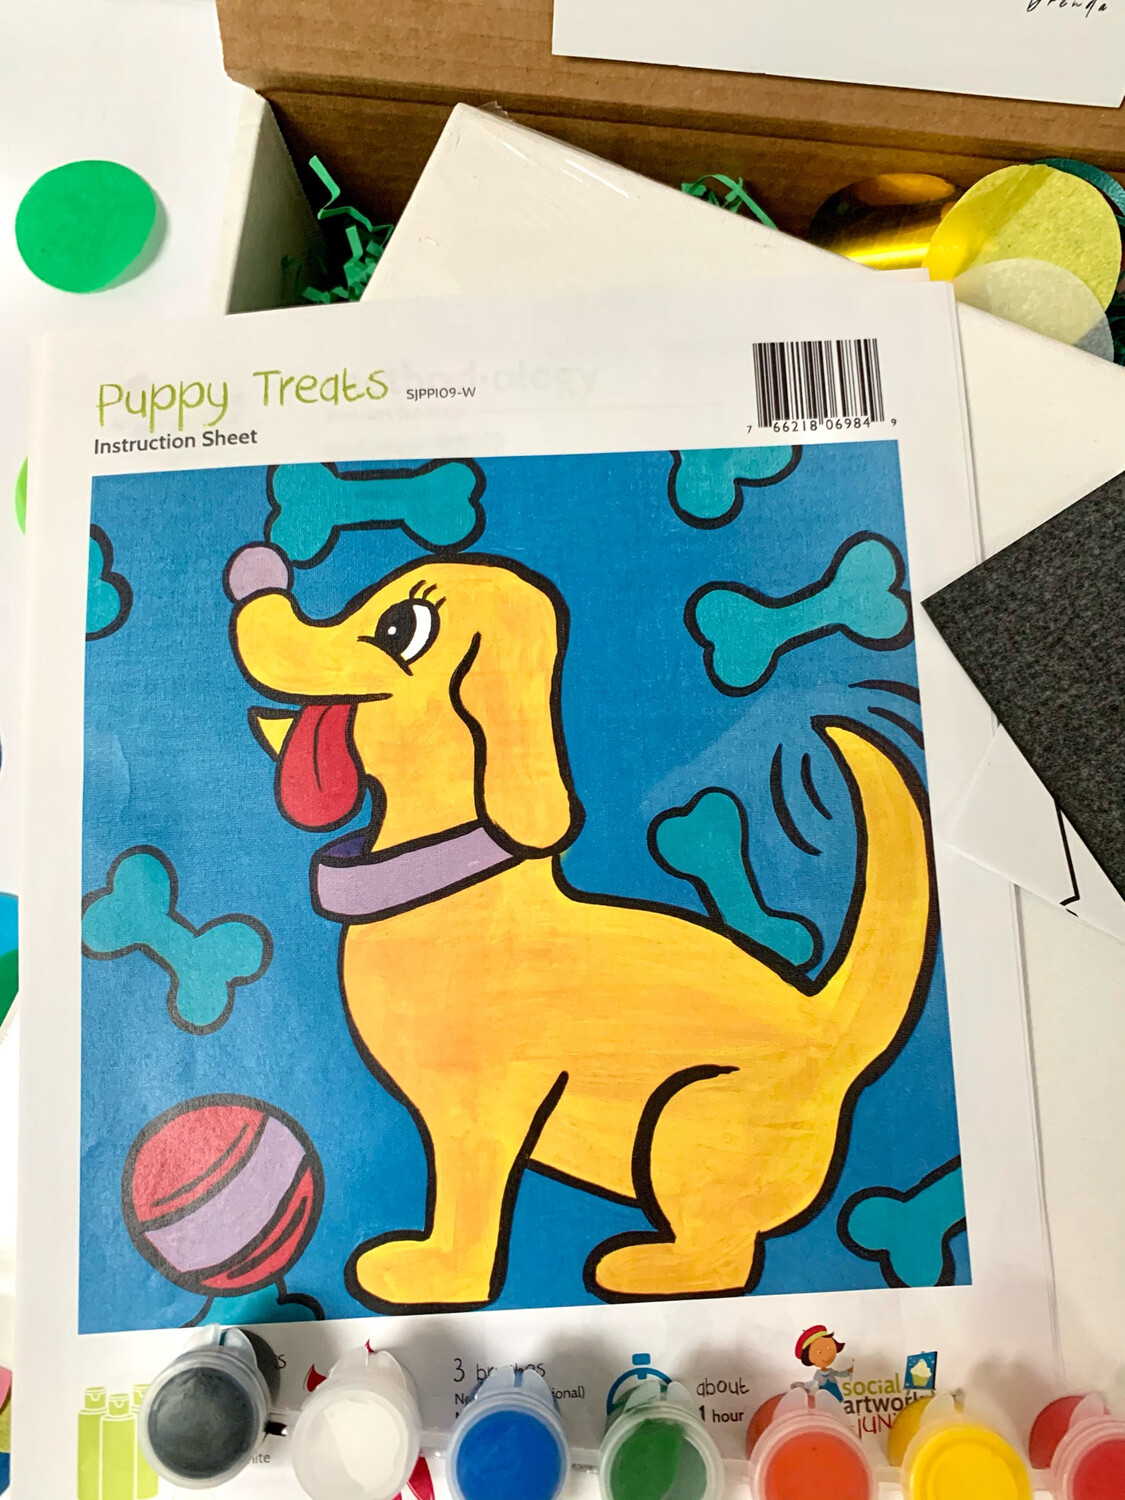 Puppy Dog KIDS Acrylic Paint On Canvas DIY Art Kit